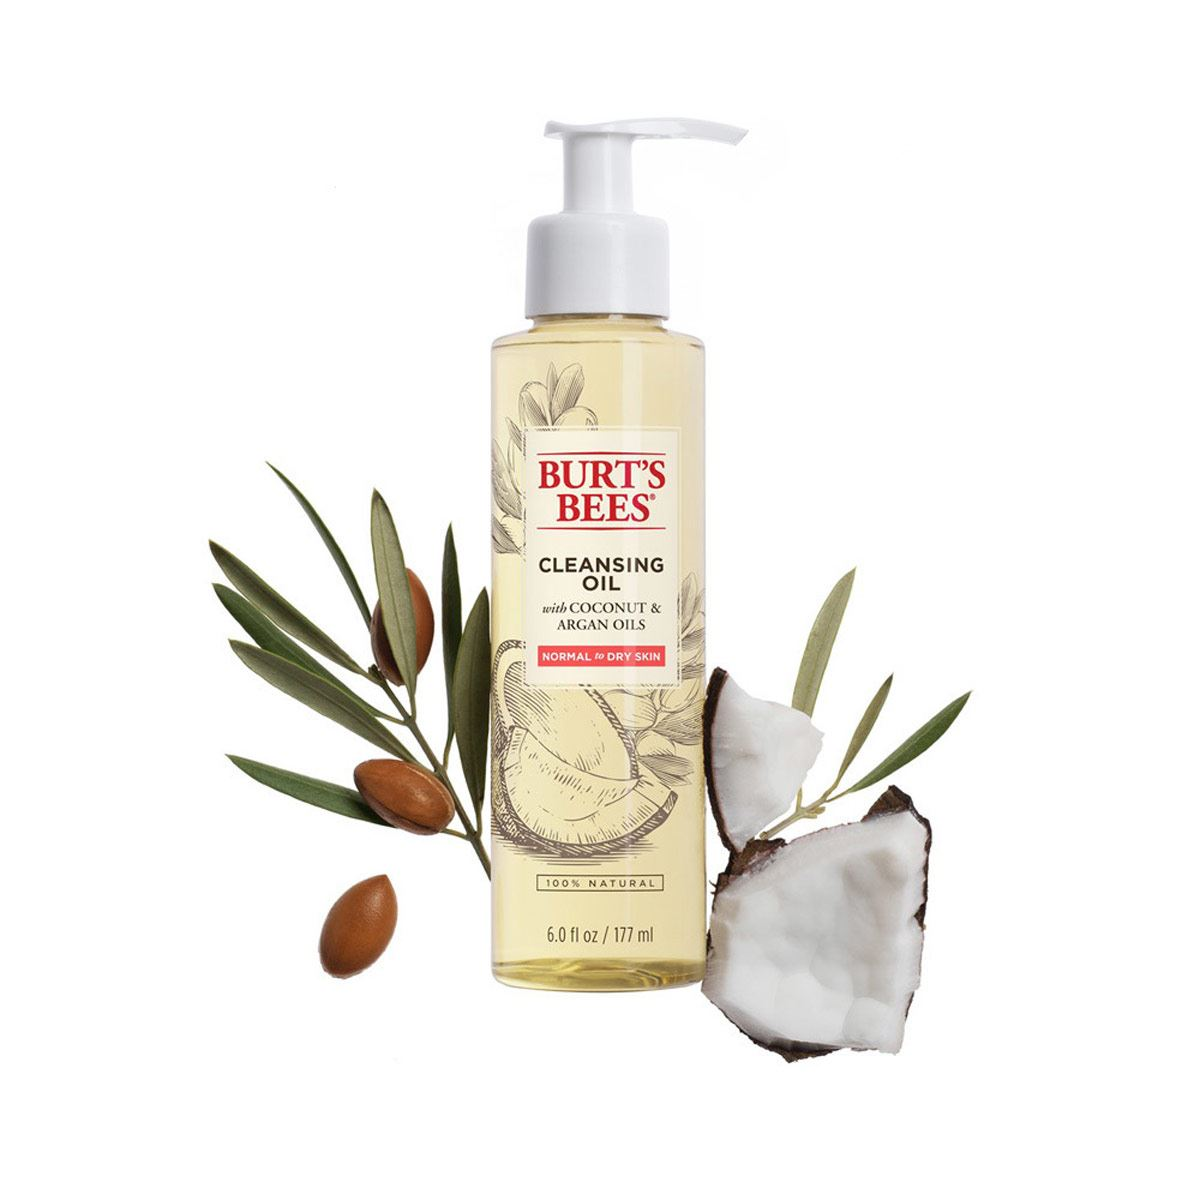 Burts Bees - Cleansing Oil